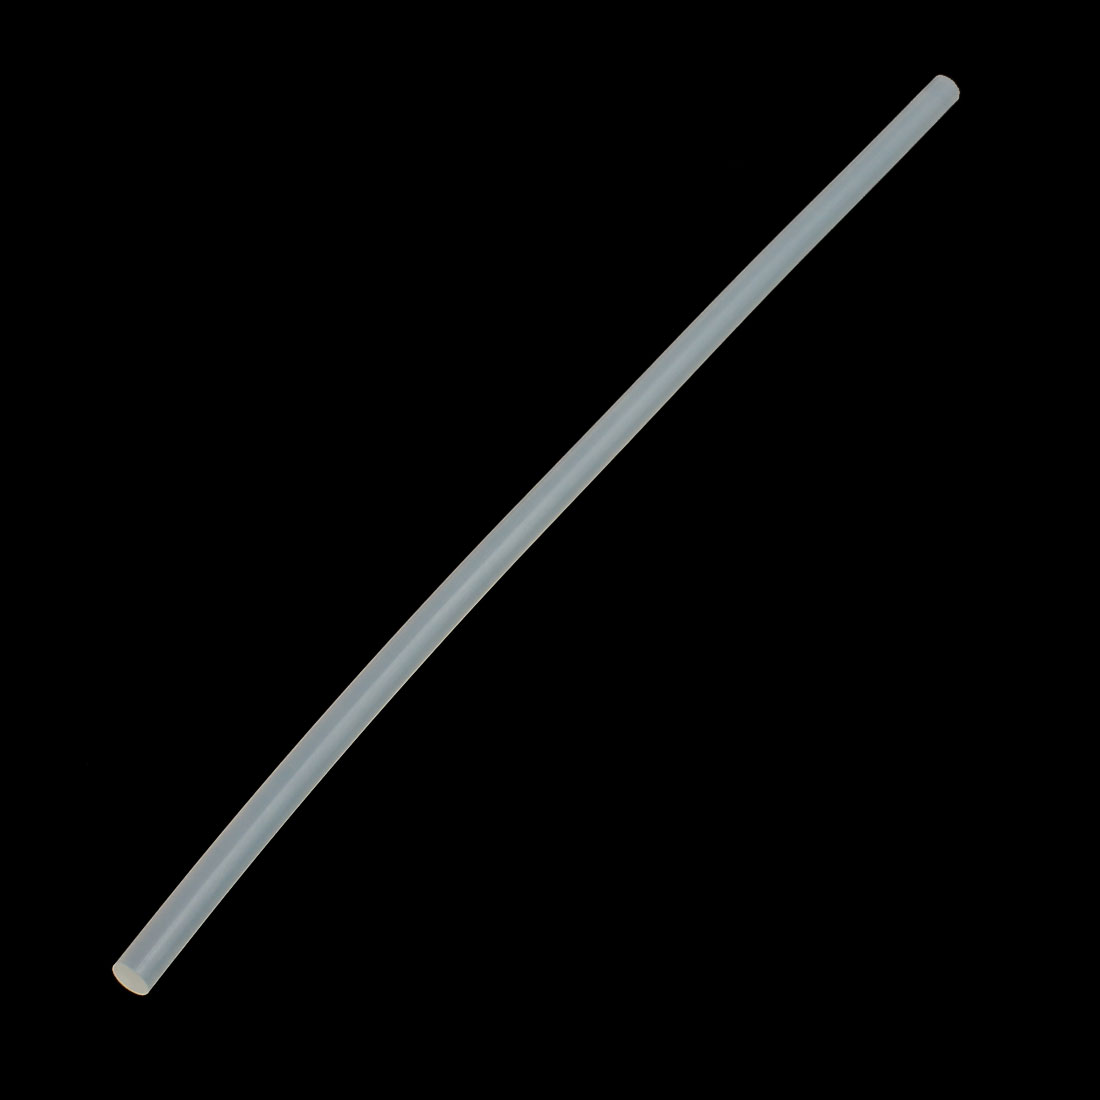 20Pcs 270x7mm Clear Hot Melt Glue Adhesive Stick for for Craft Heating Glue Gun - image 1 of 3